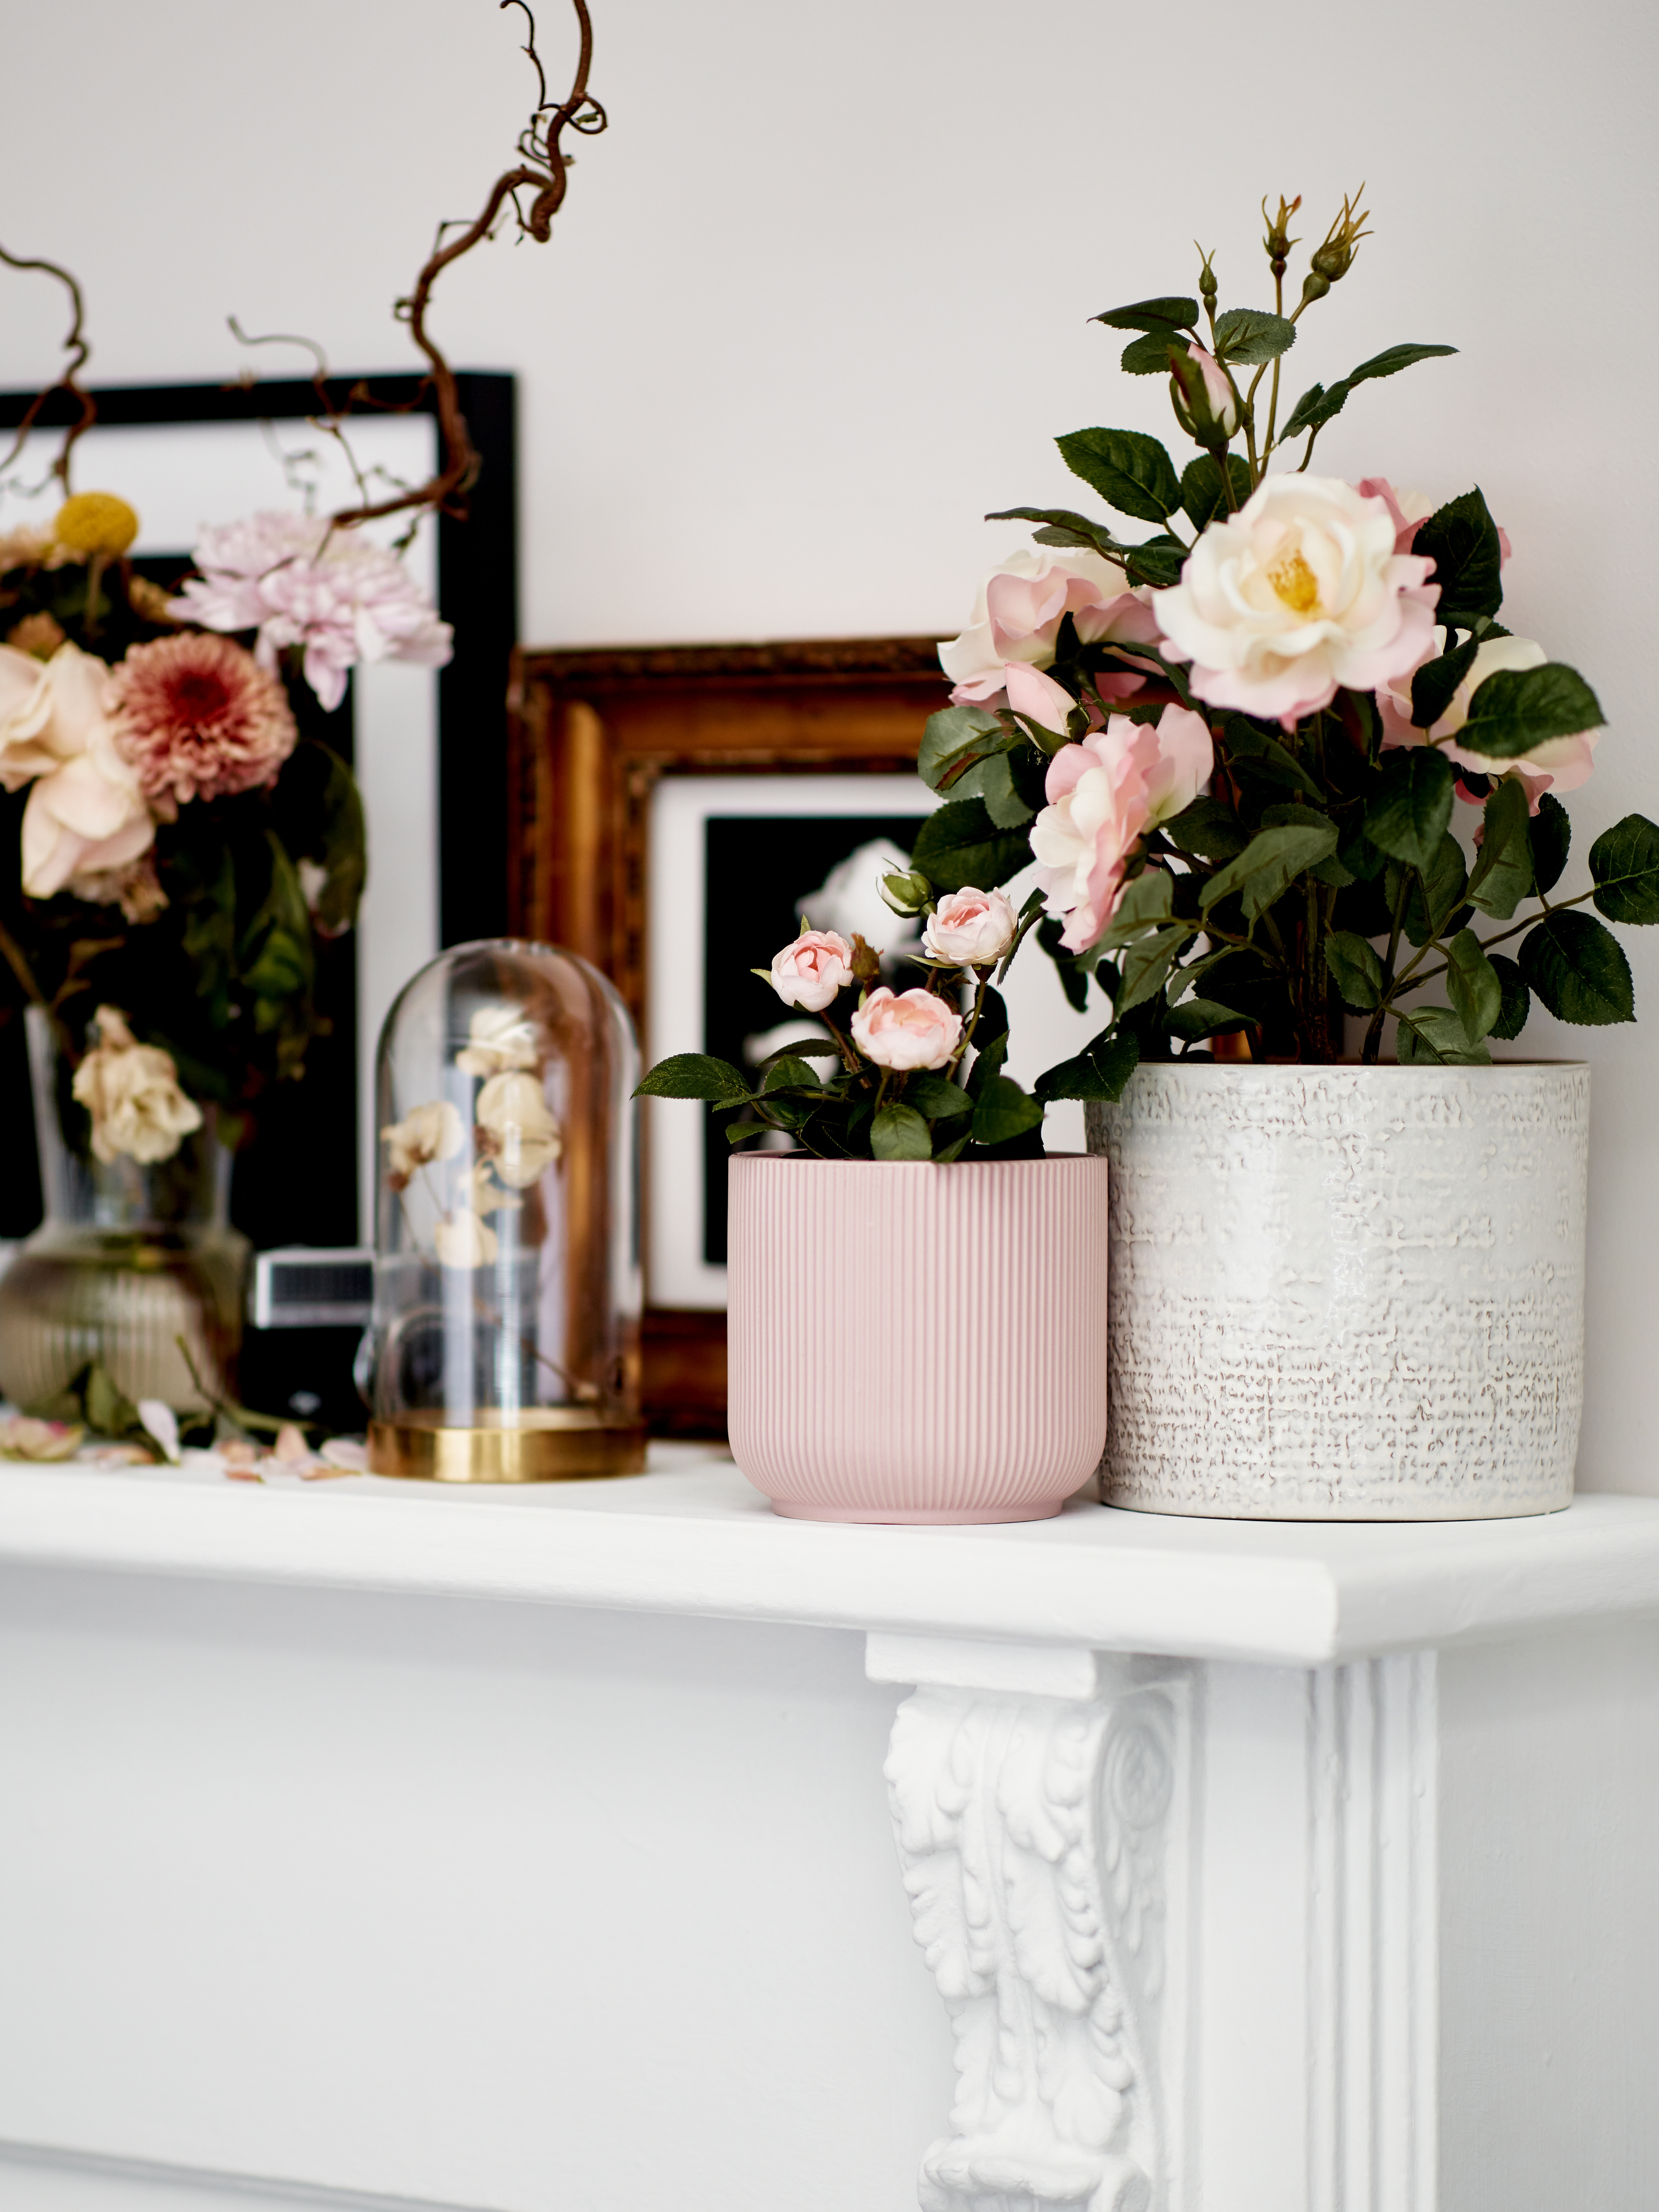 FEJKA artificial flowers in CHIAFRÖN and GRADVIS vases together with framed art and other decorations on a mantelpiece.